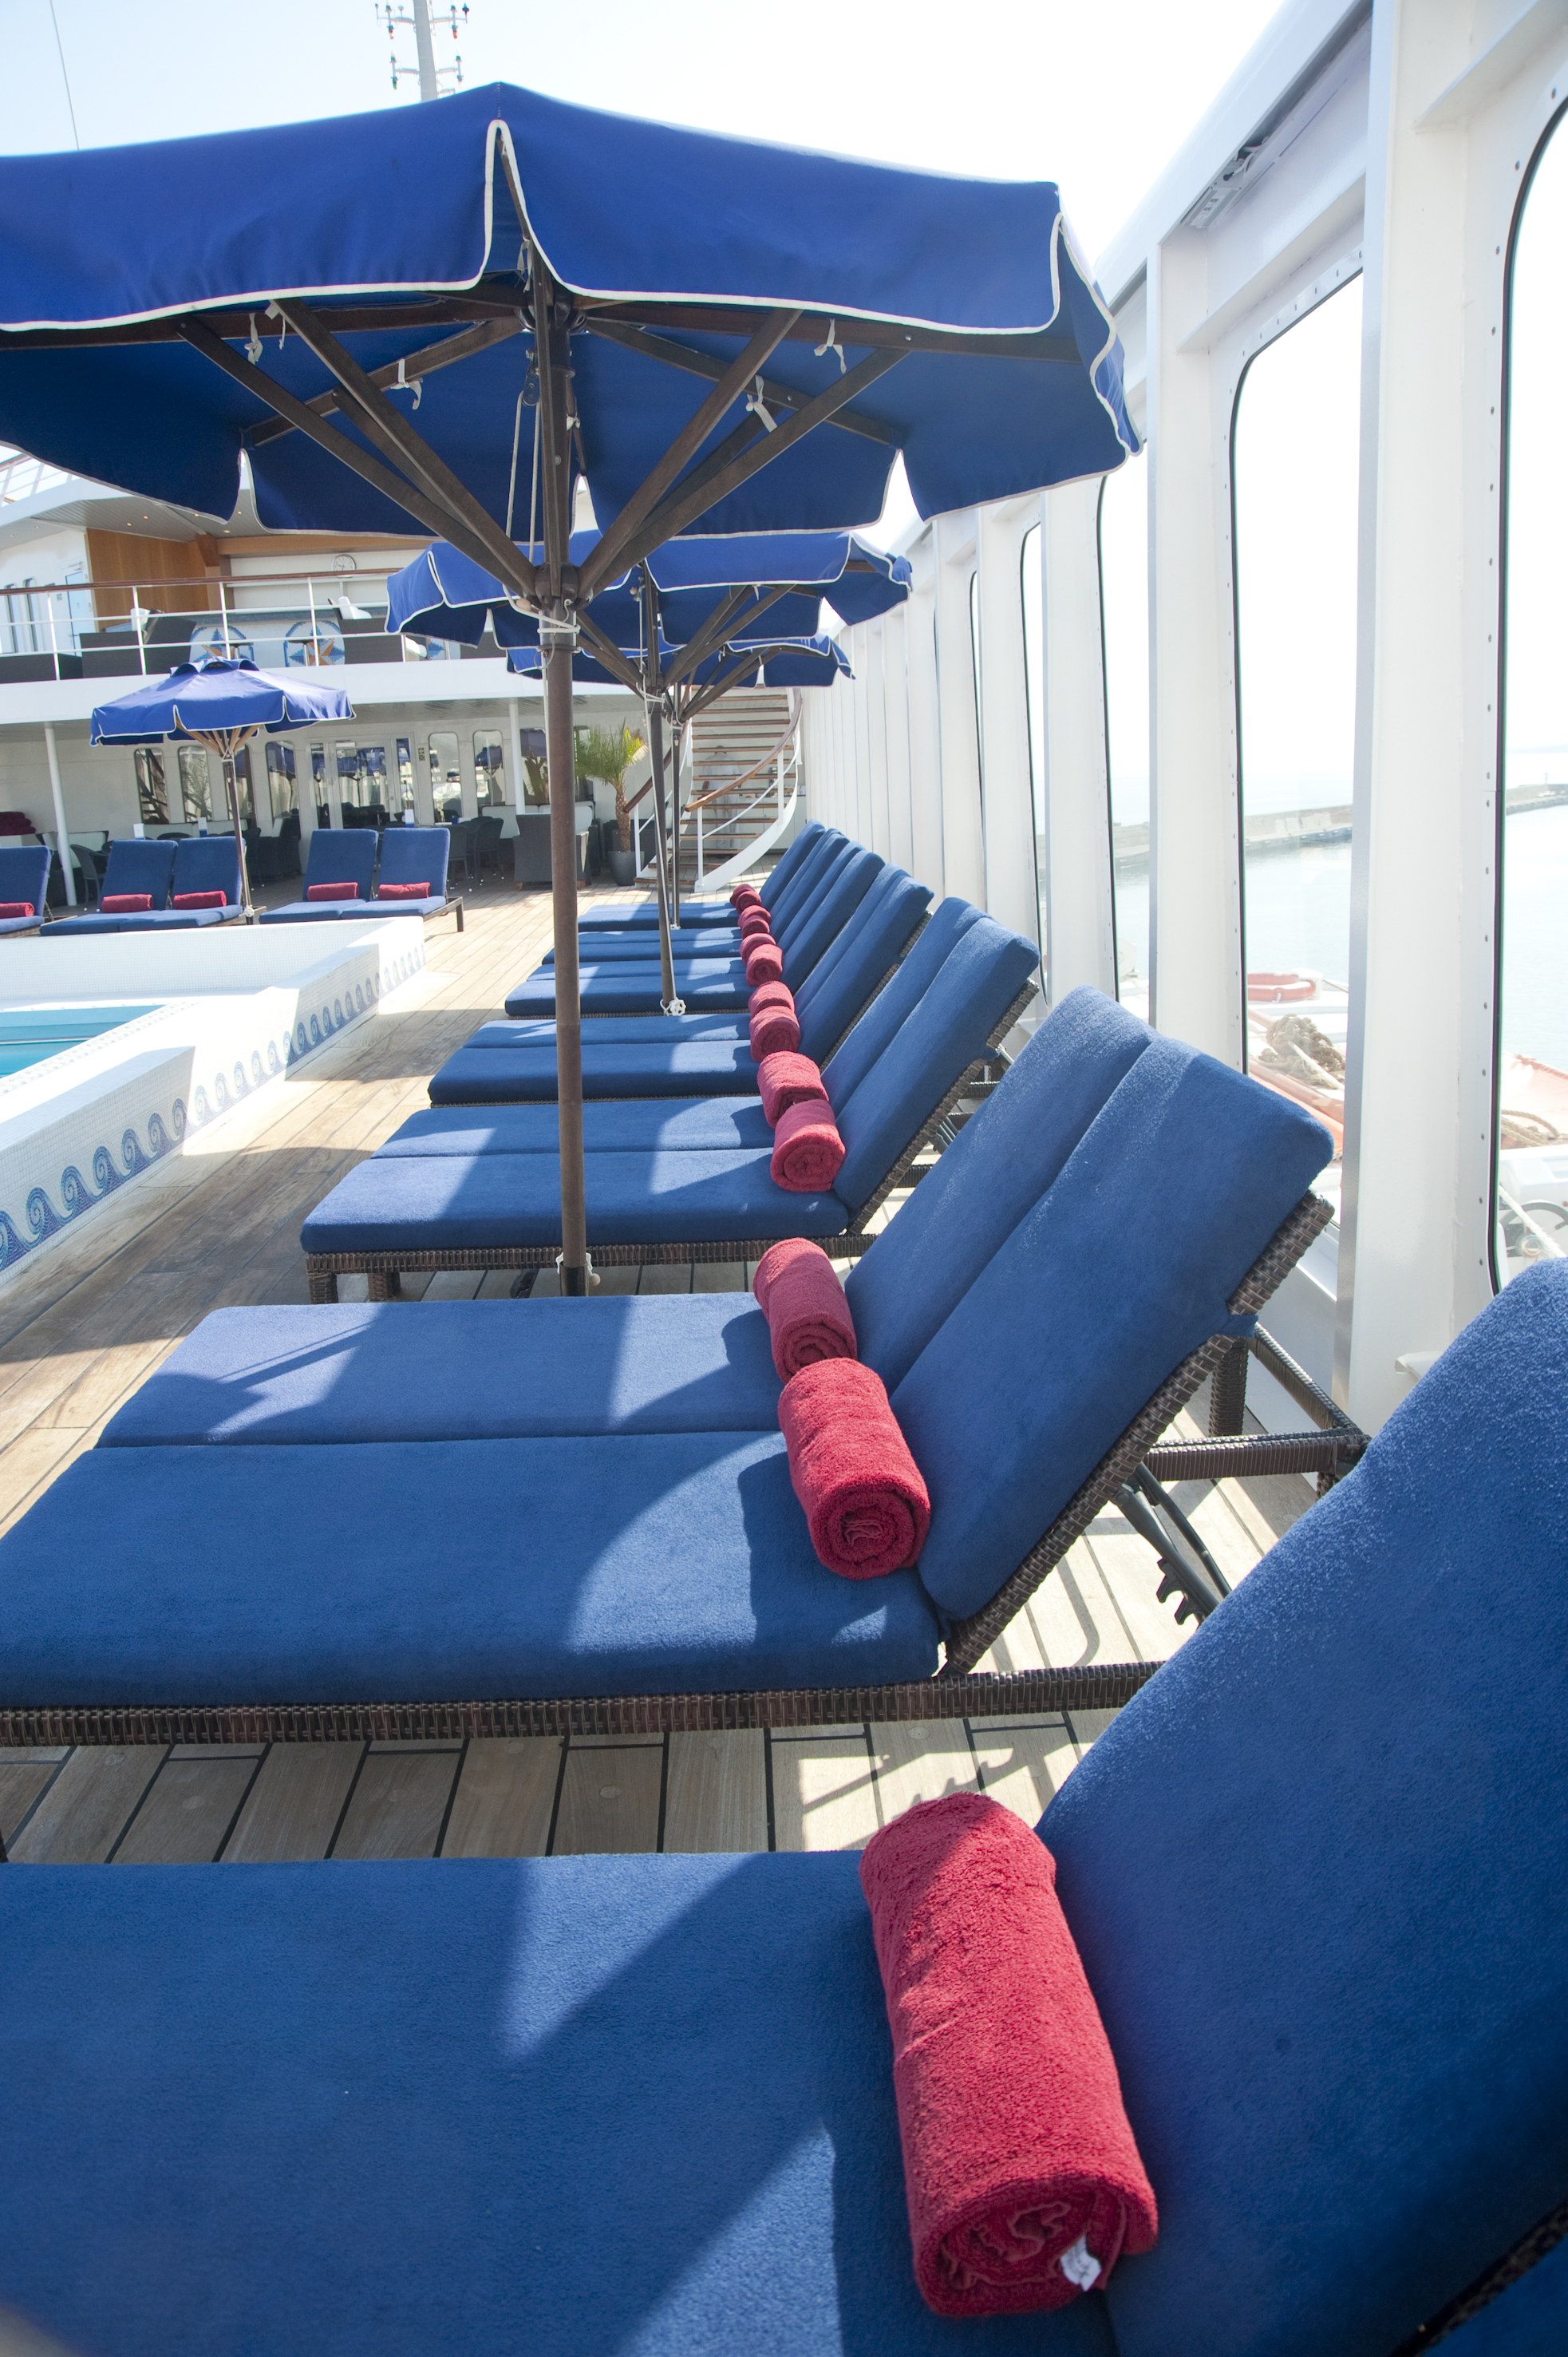 Voyages to Antiquity Aegean Odyssey Sun Deck Chairs.jpg